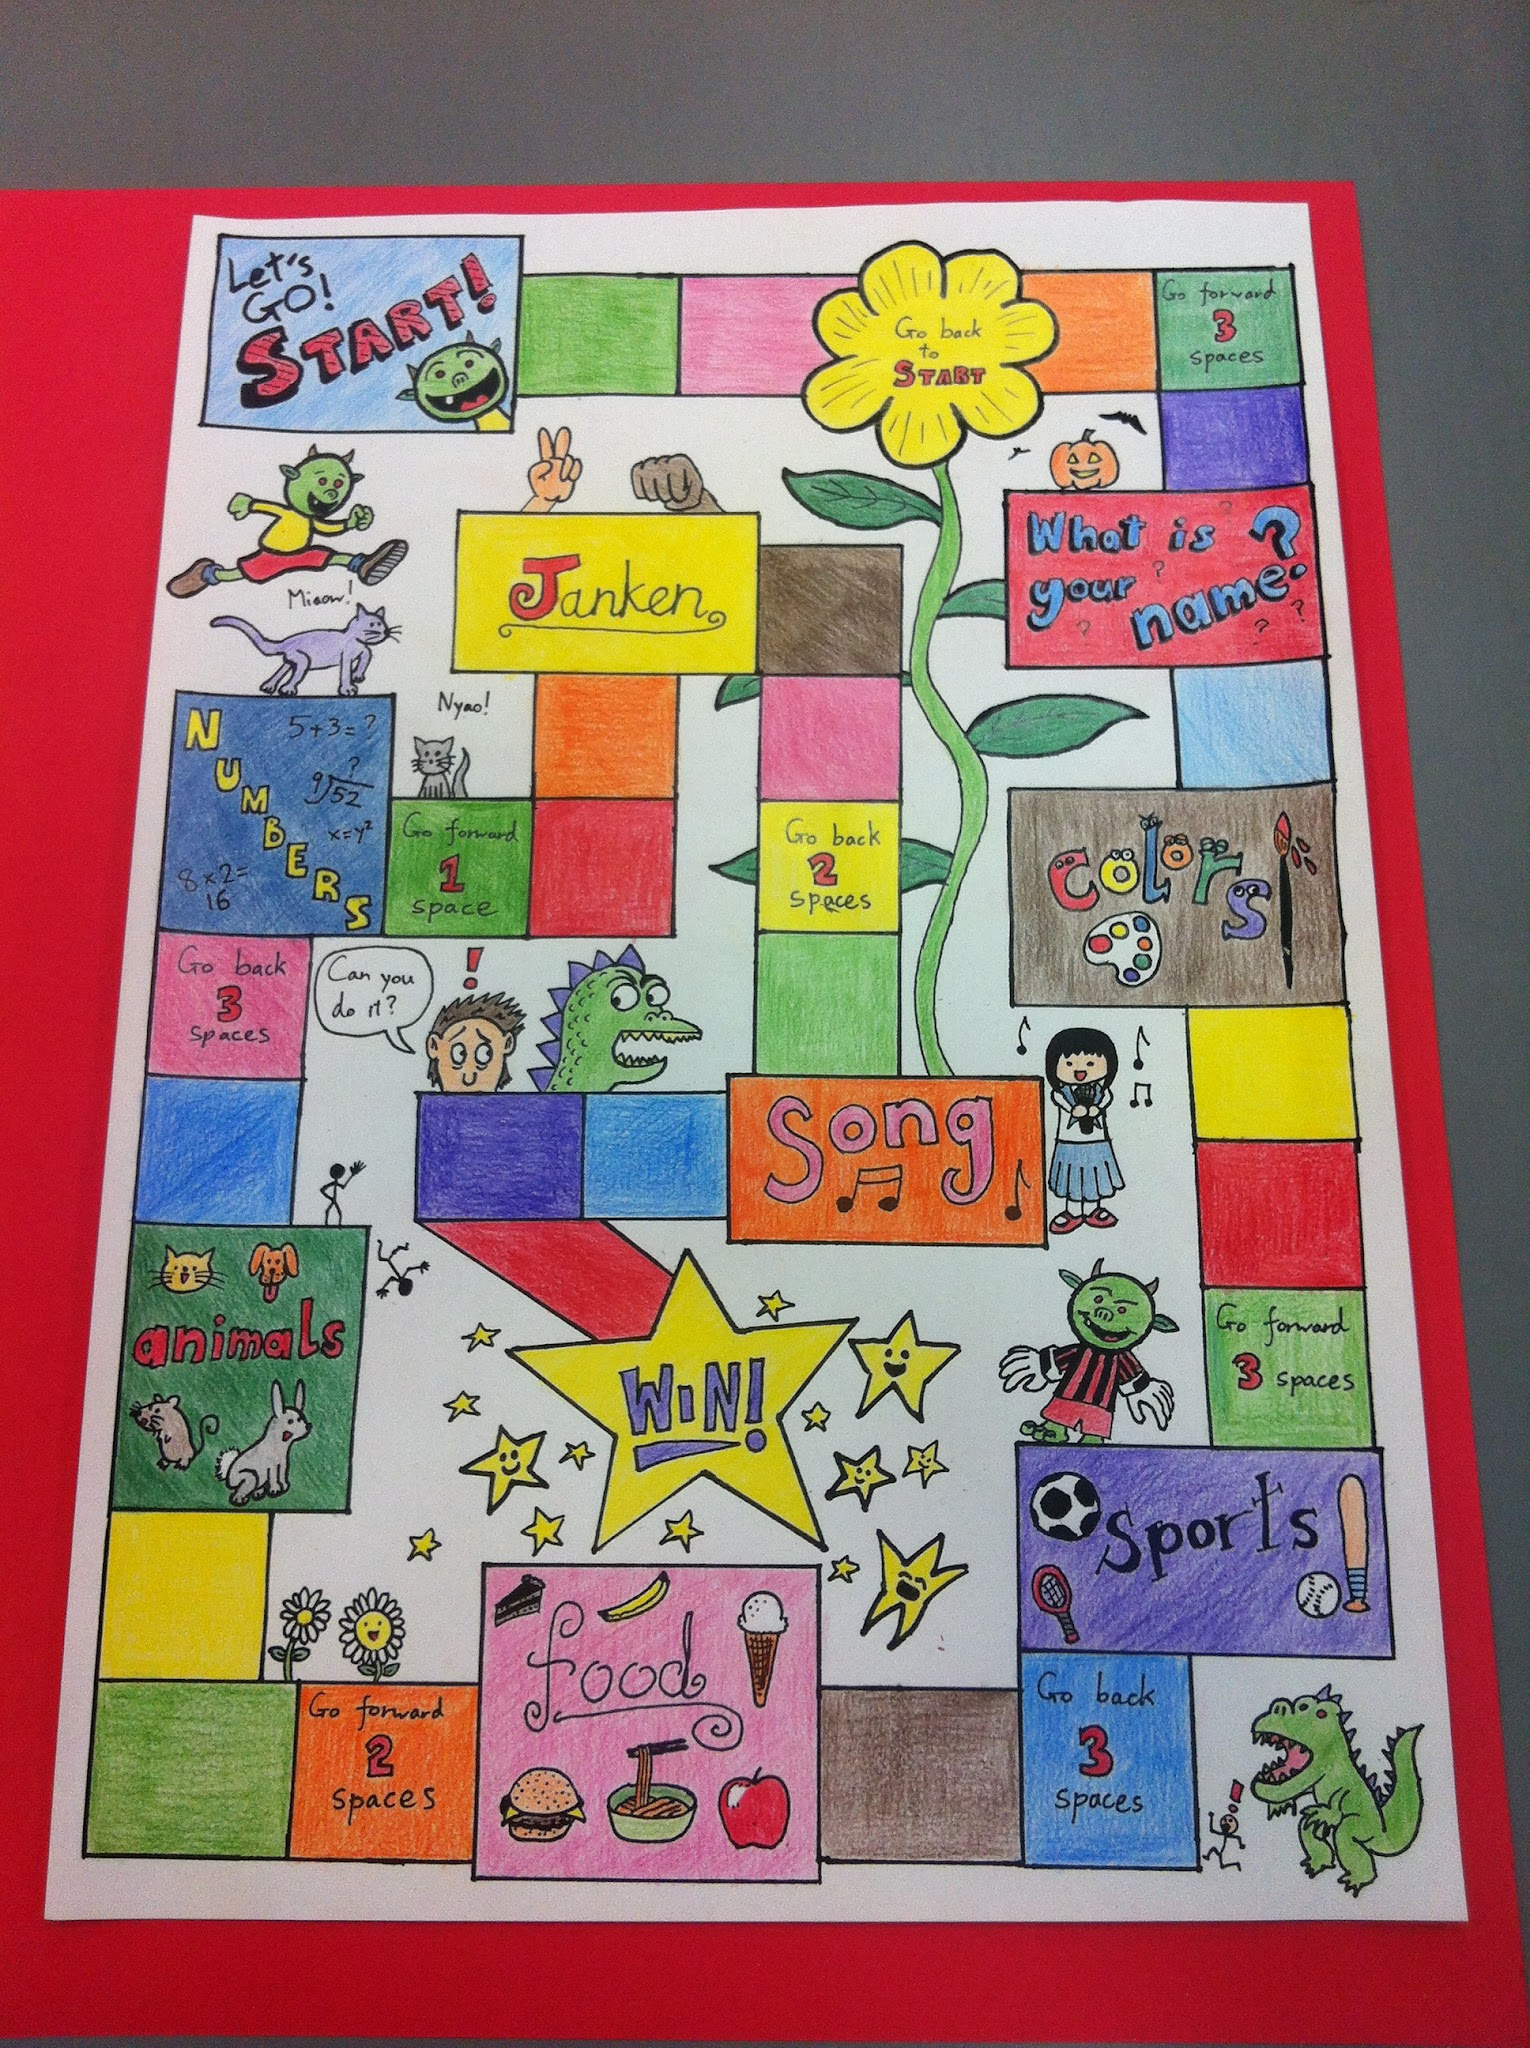 Classroom Game Ideas For College : Board game ideas for school projects pixshark